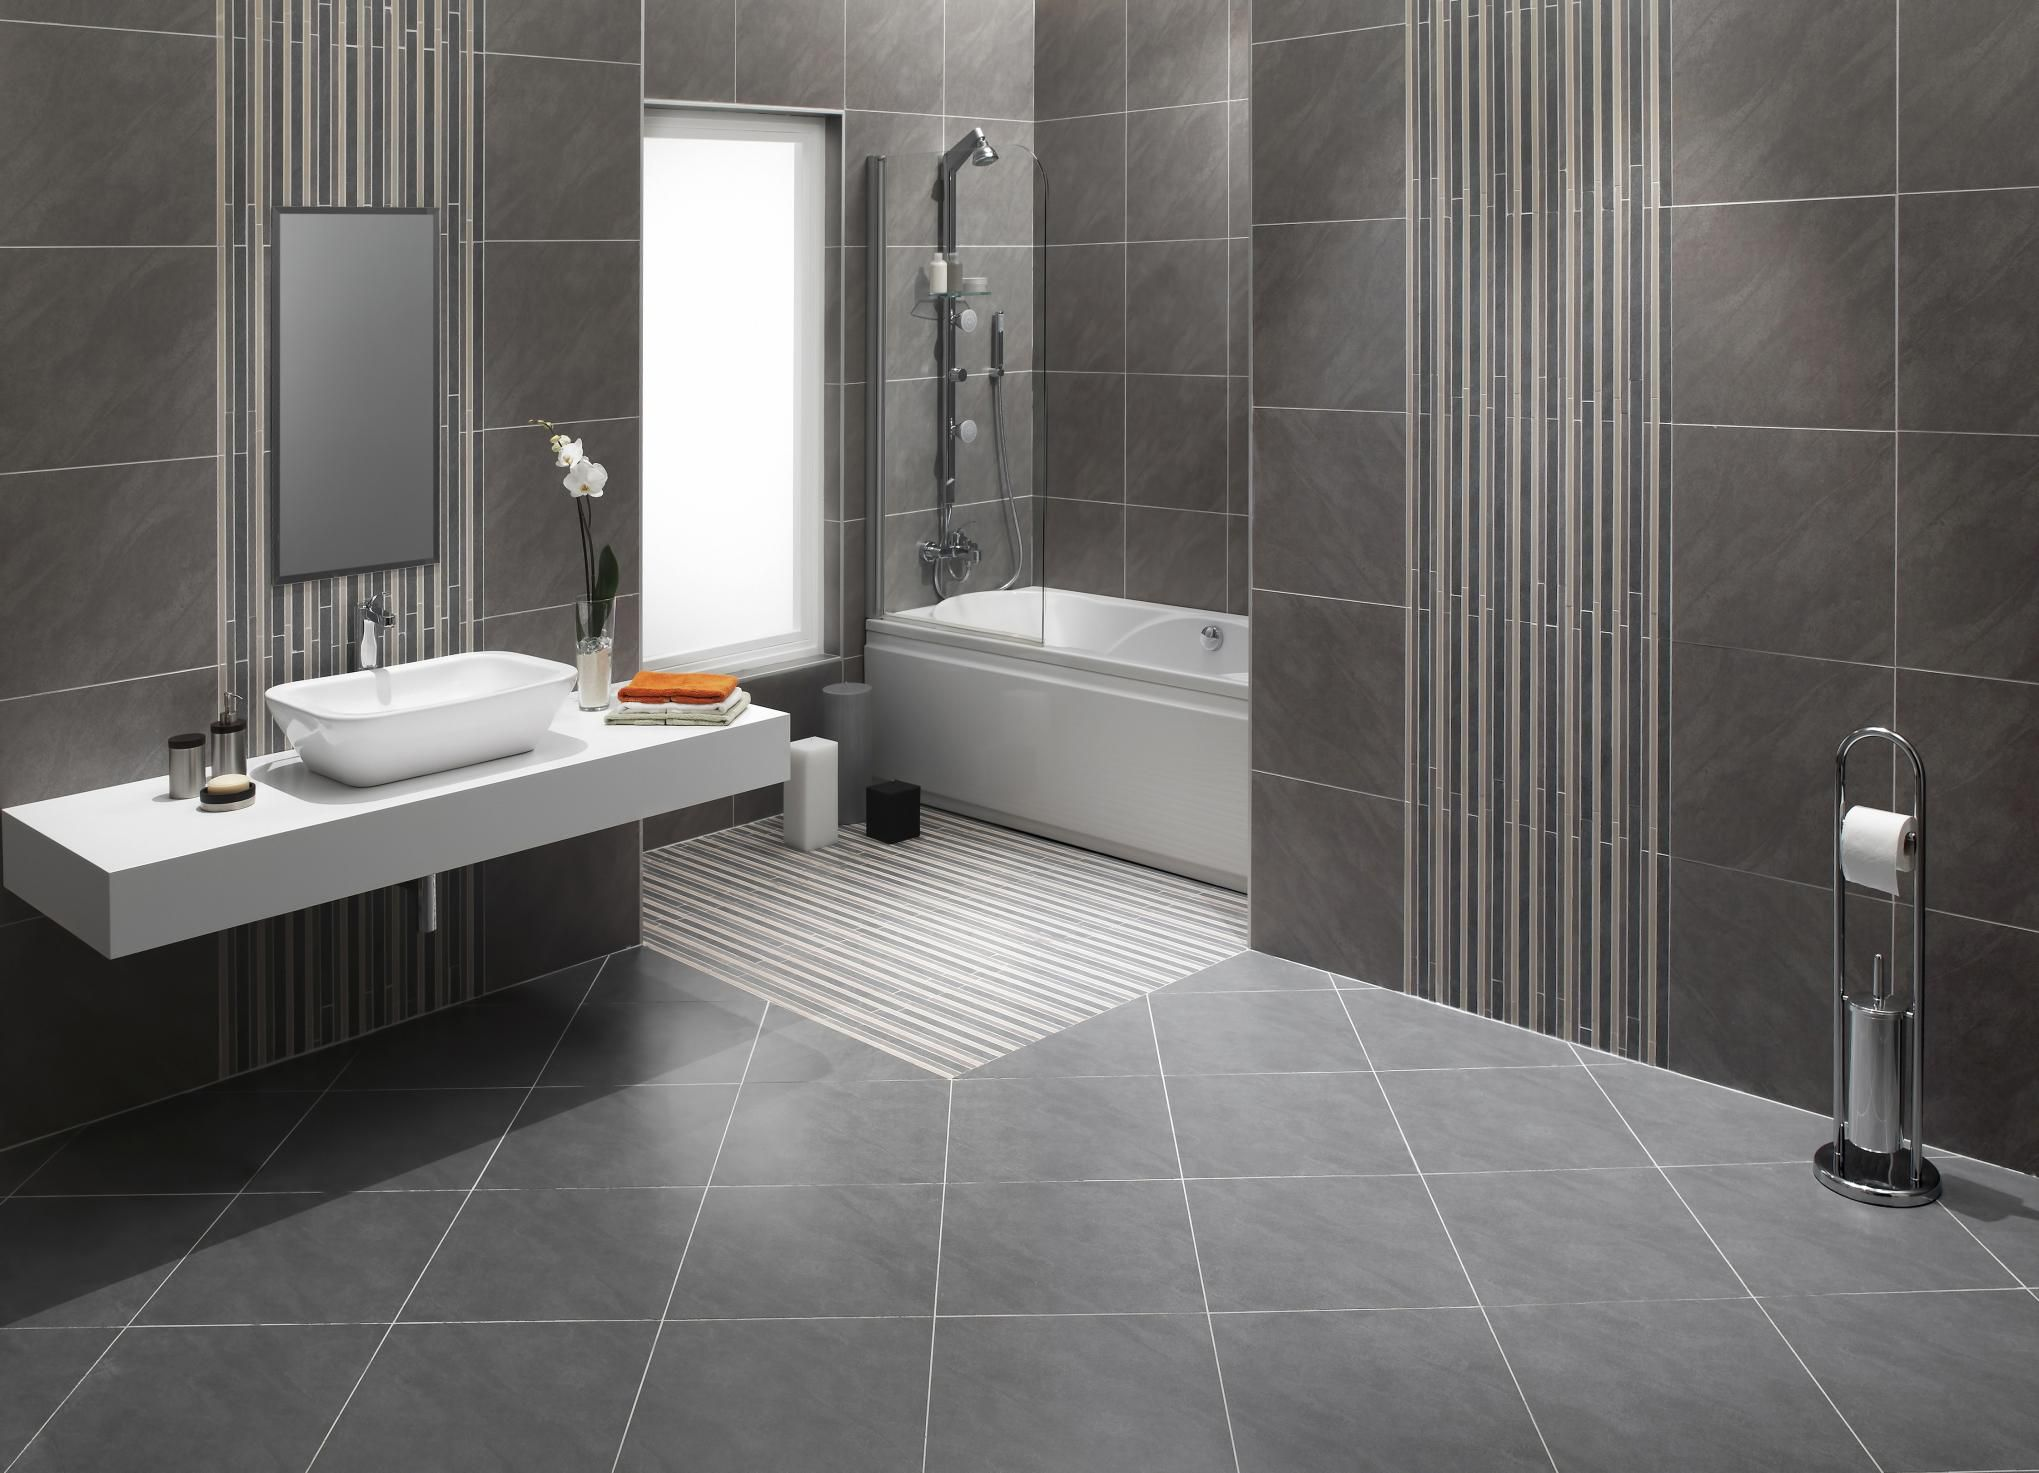 Natural stone bathroom floor should you install it for Best product for cleaning bathroom tiles